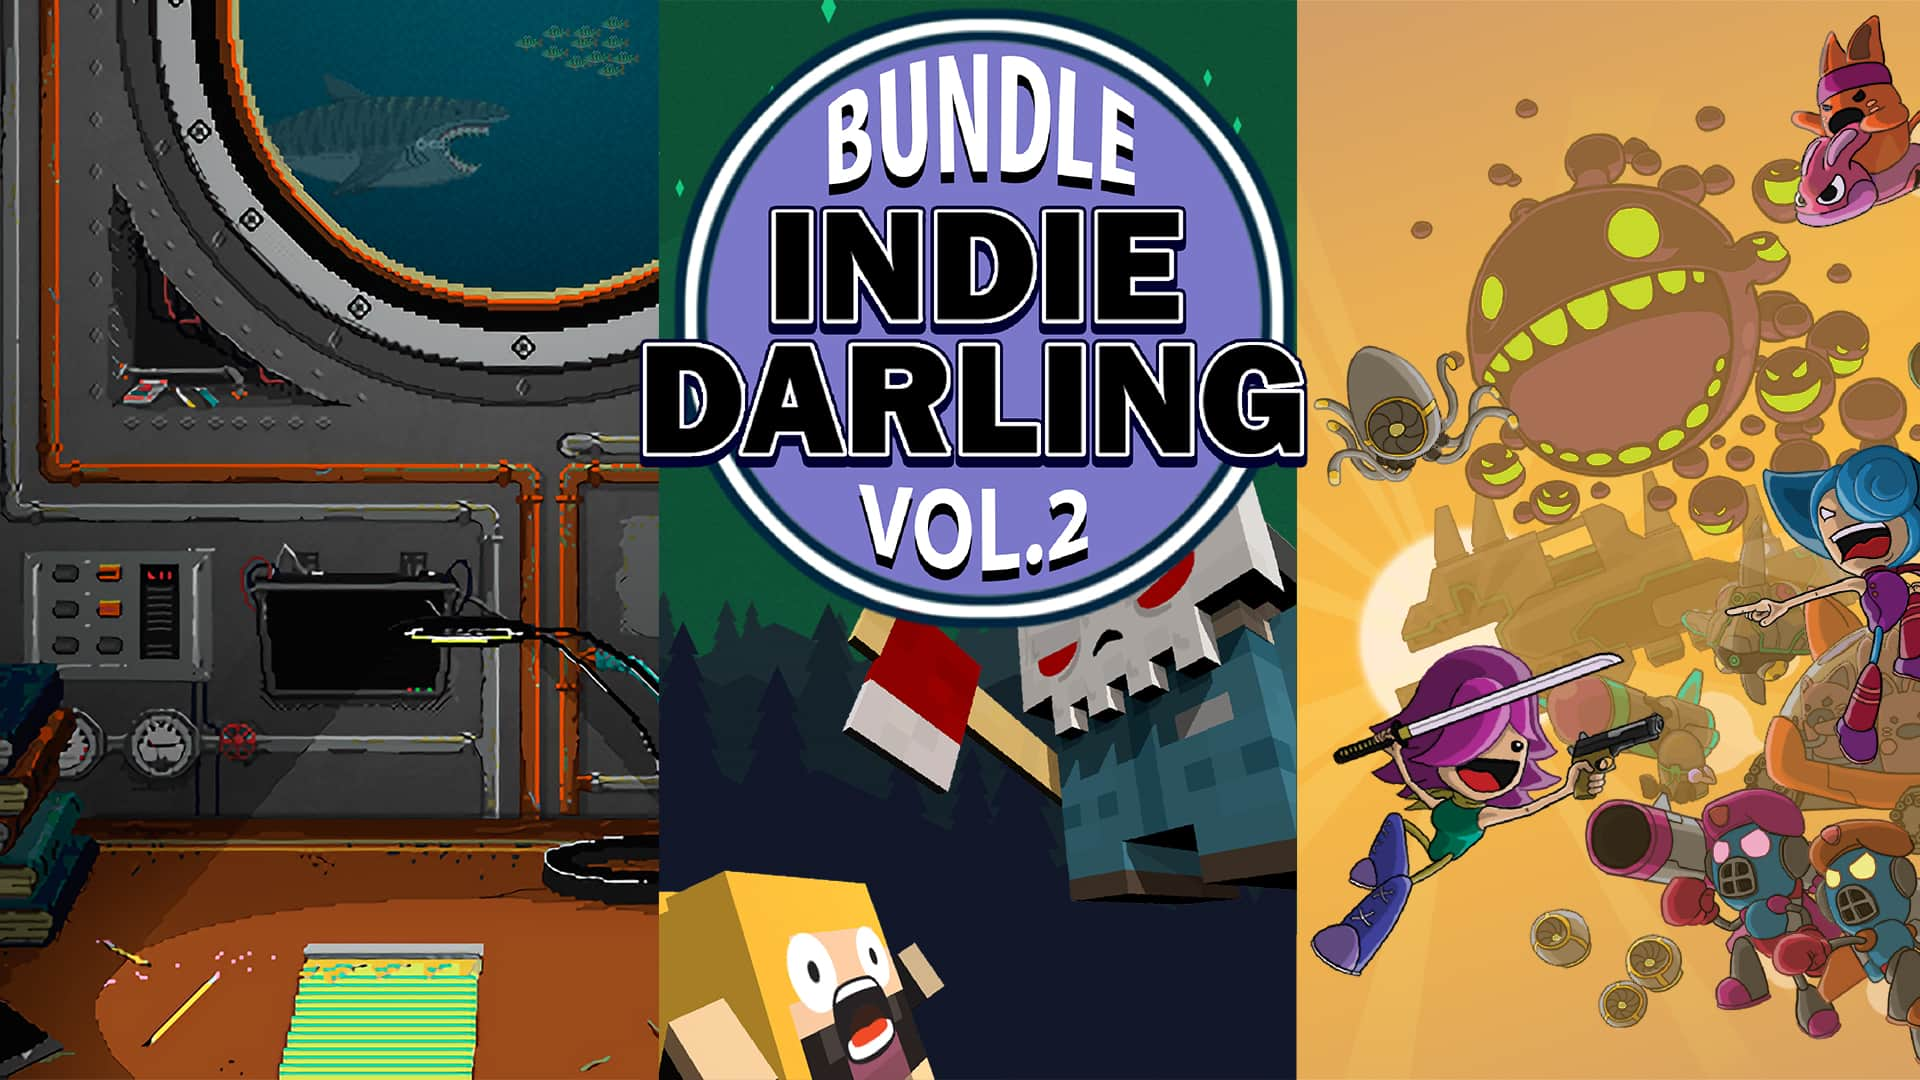 Nintendo Switch eShop: Indie Darling Bundle Vol 2 for $6.99 (80% OFF)